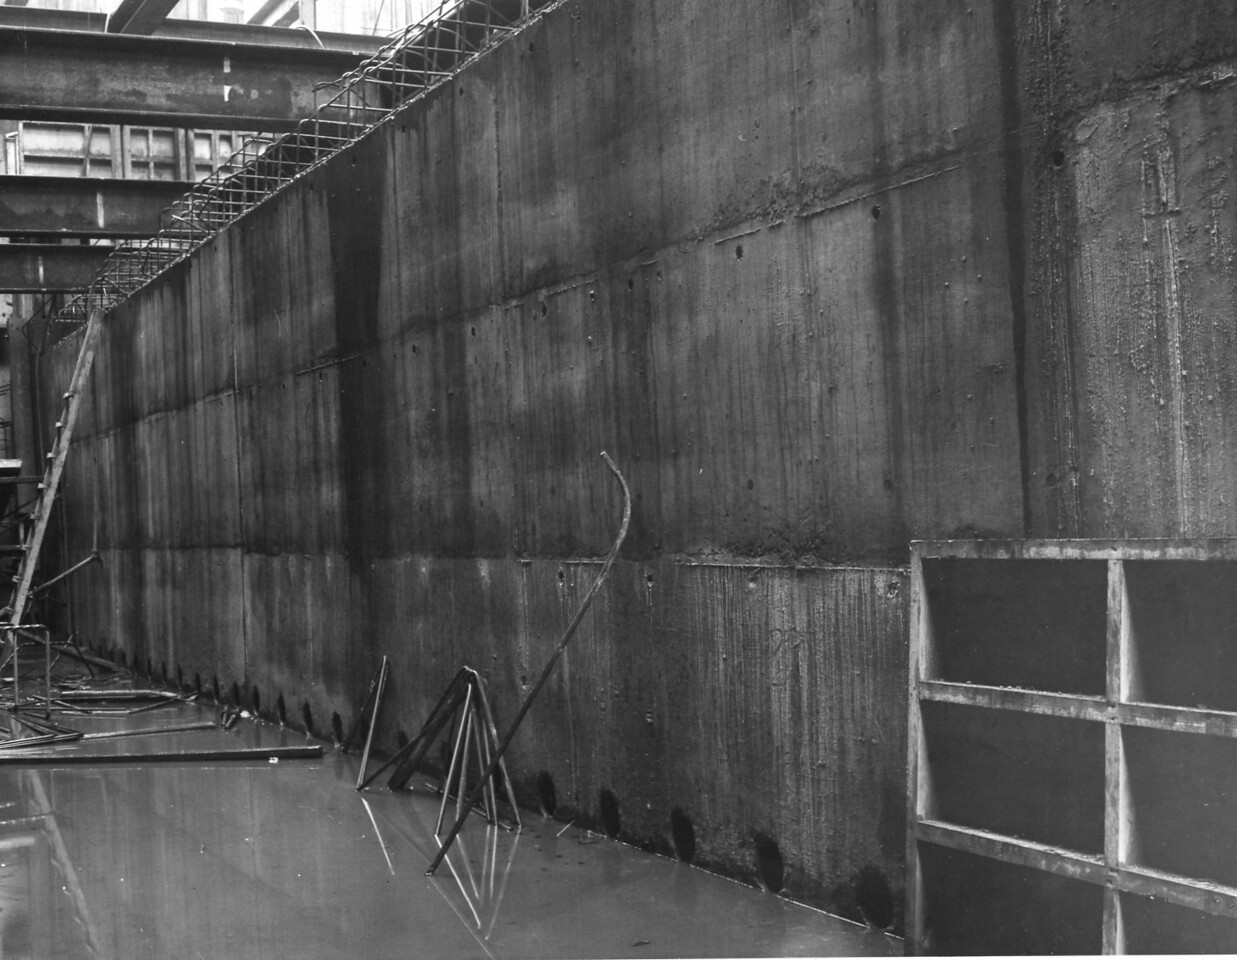 D063Entrance works - Cill conctreted up to underside of fourth bracing frame  21/12/.1962